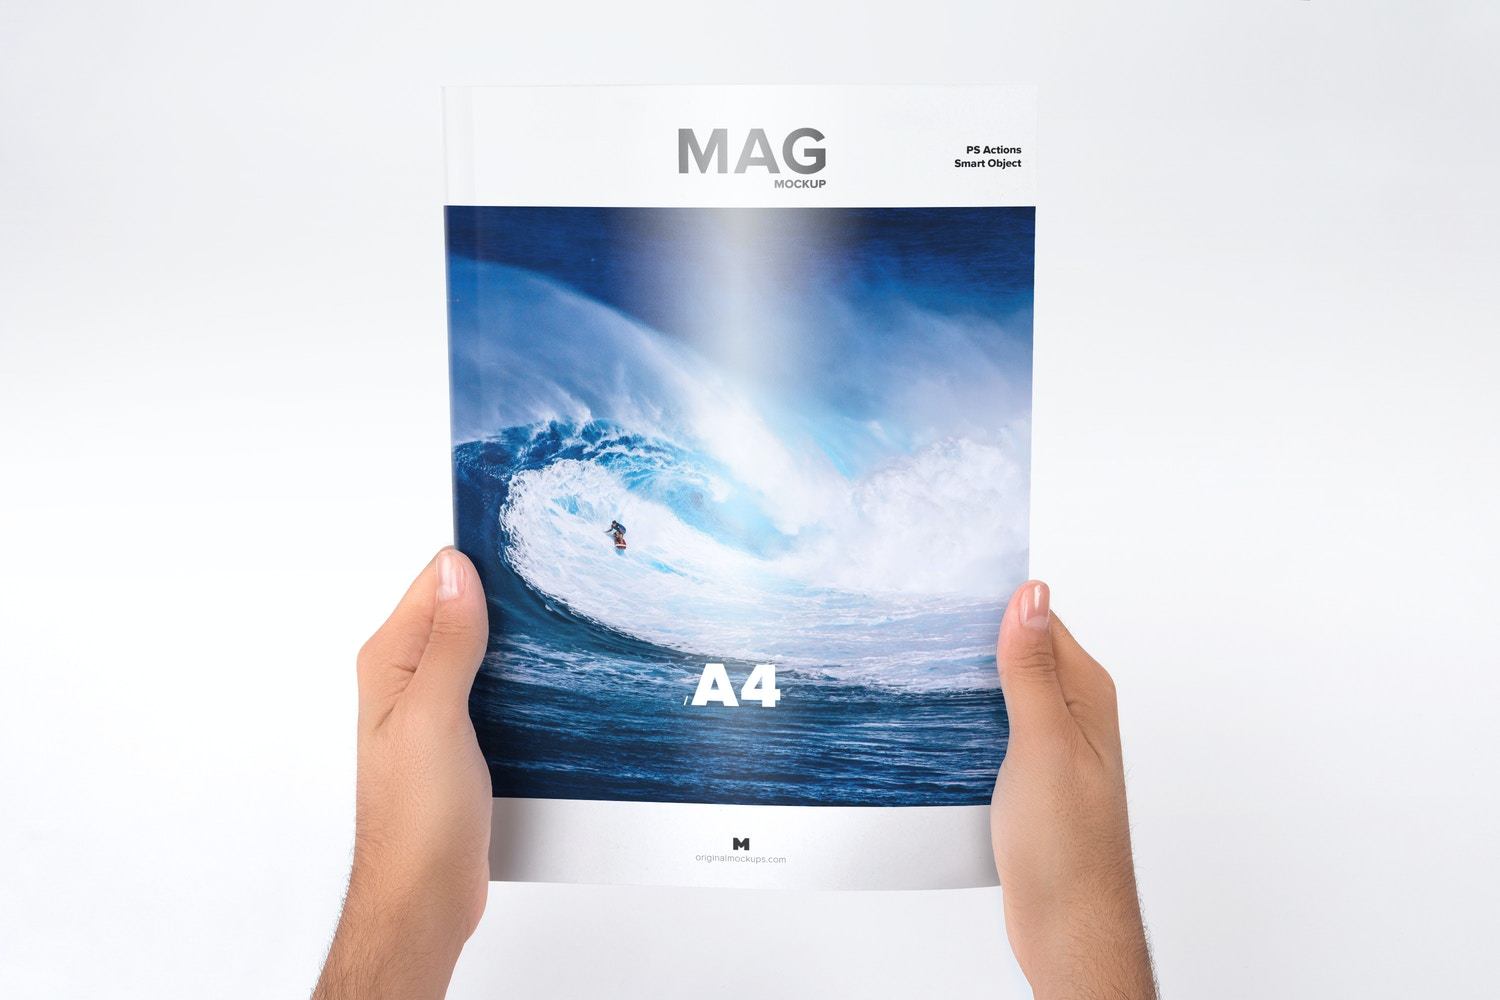 Holding Closed A4 Magazine Mockup by Original Mockups on Original Mockups